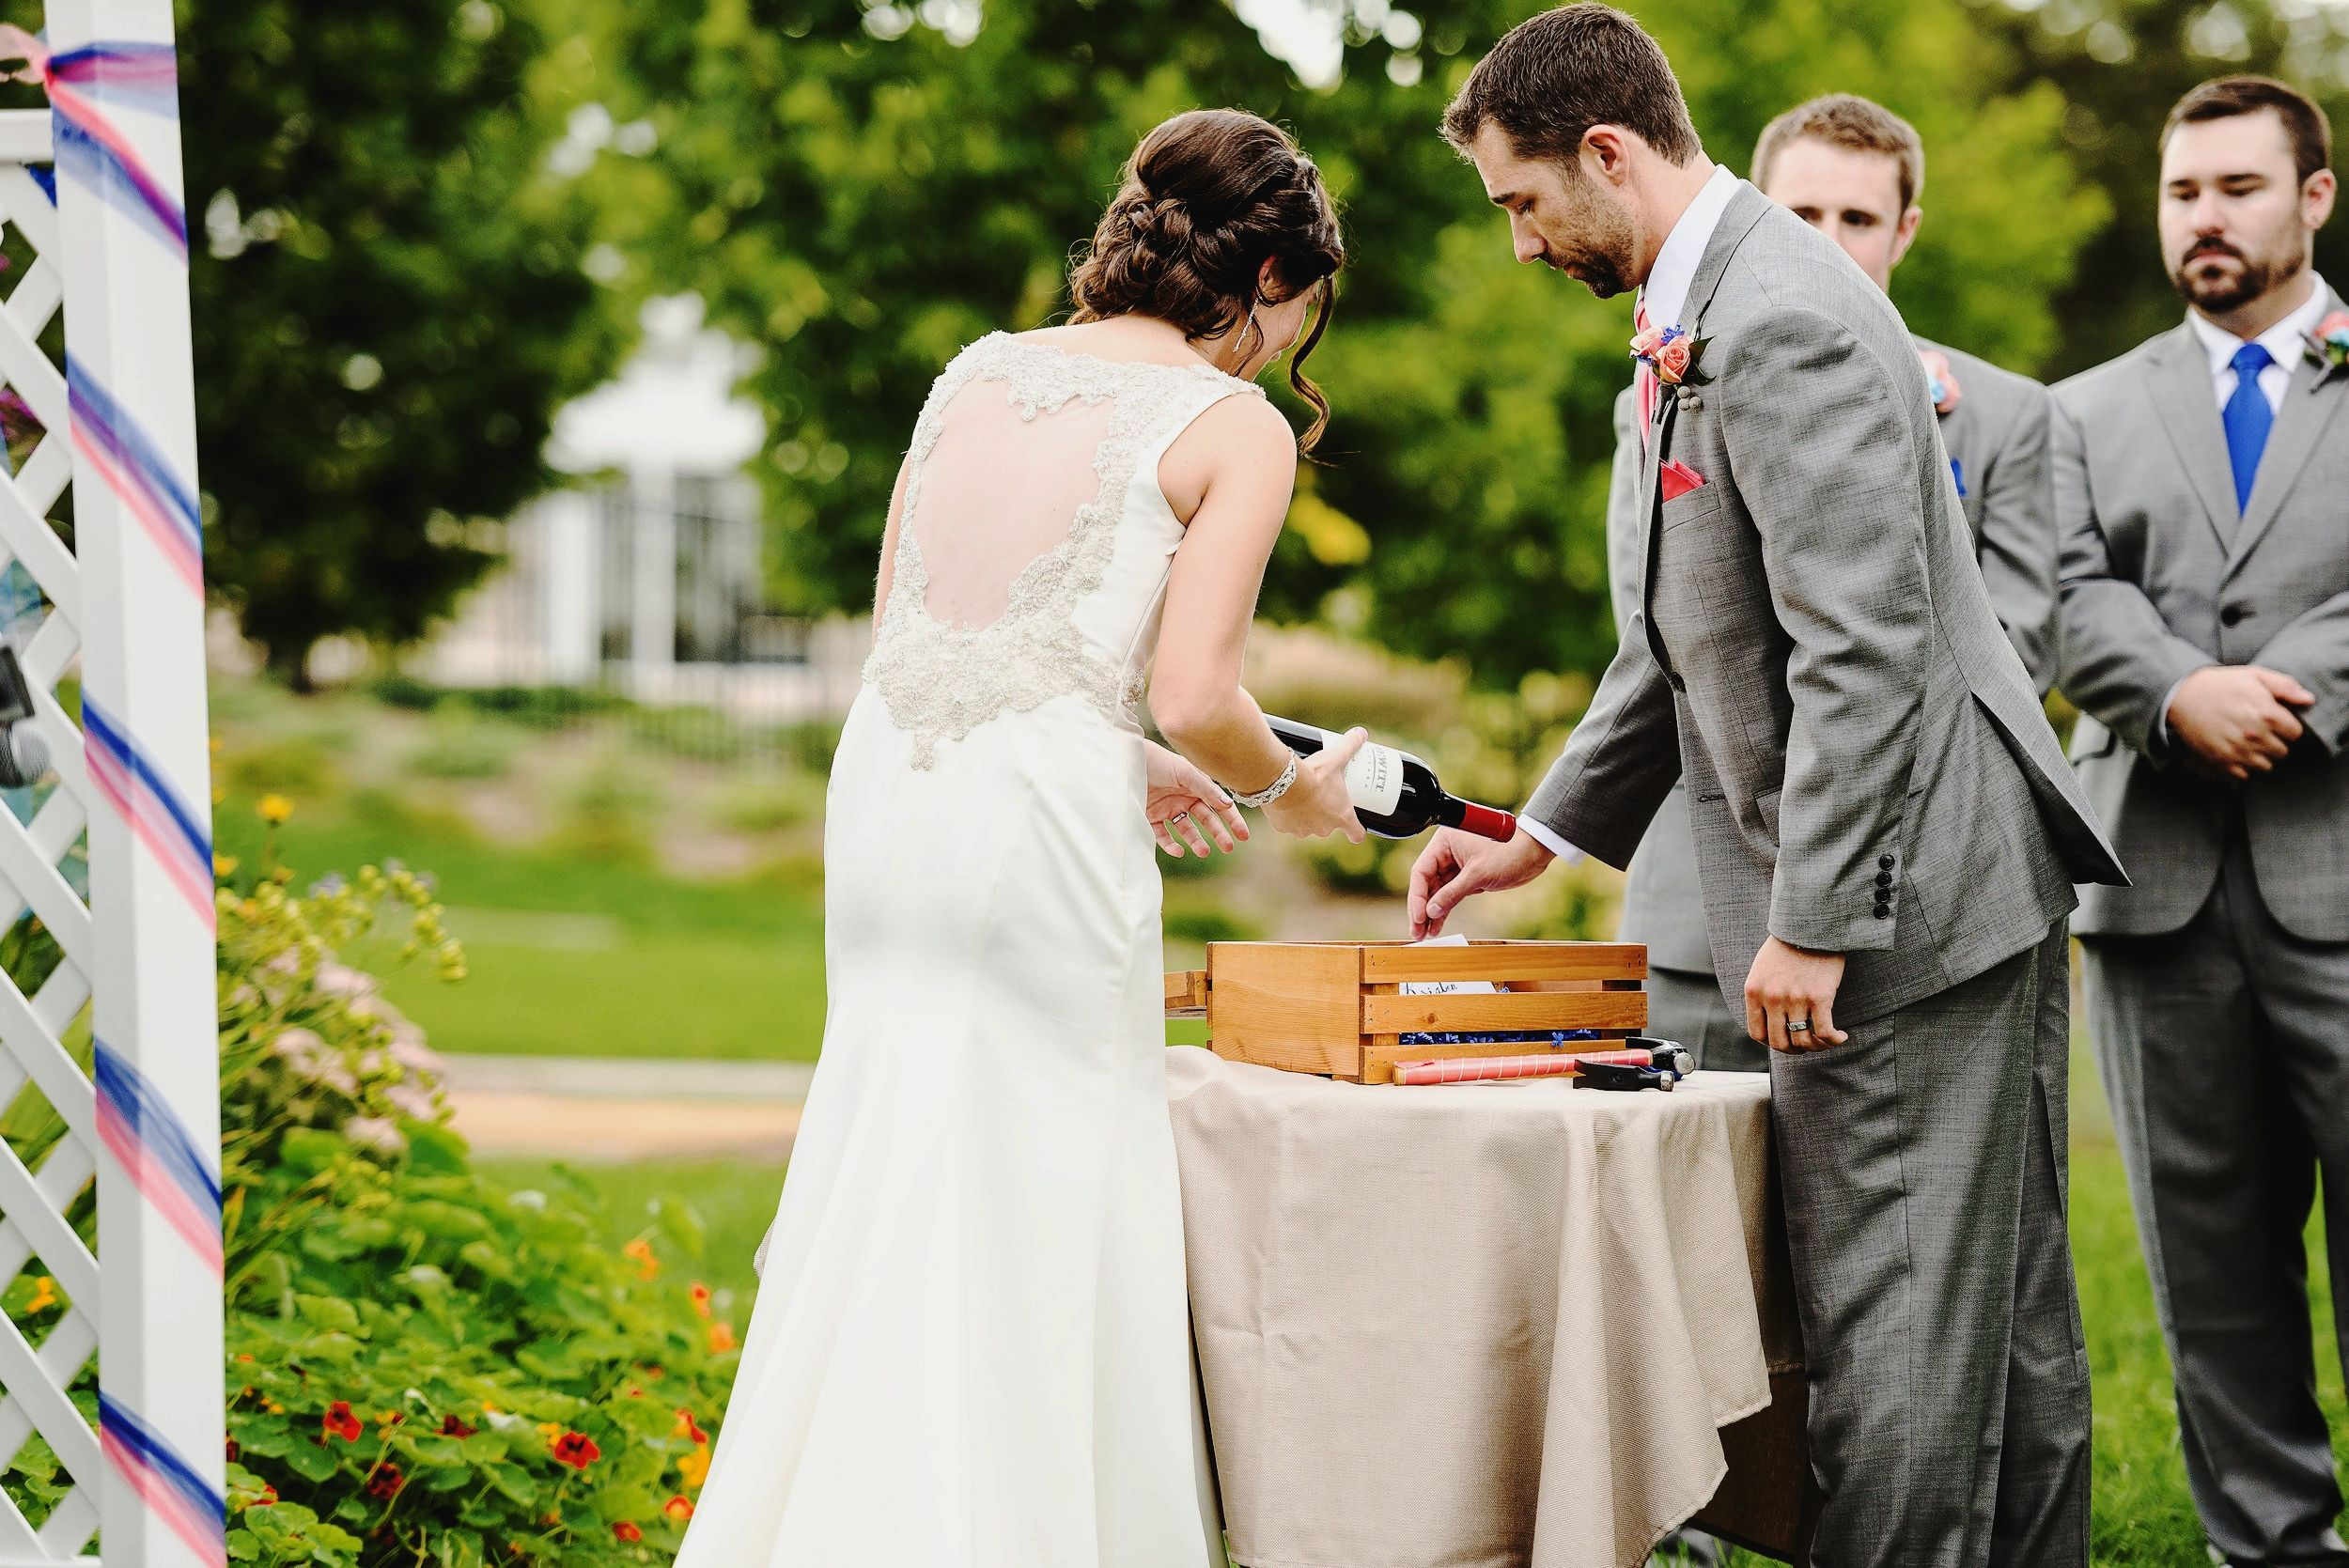 Unity Ceremony Ideas For Your Traditional Or Non Traditional Wedding Ceremony